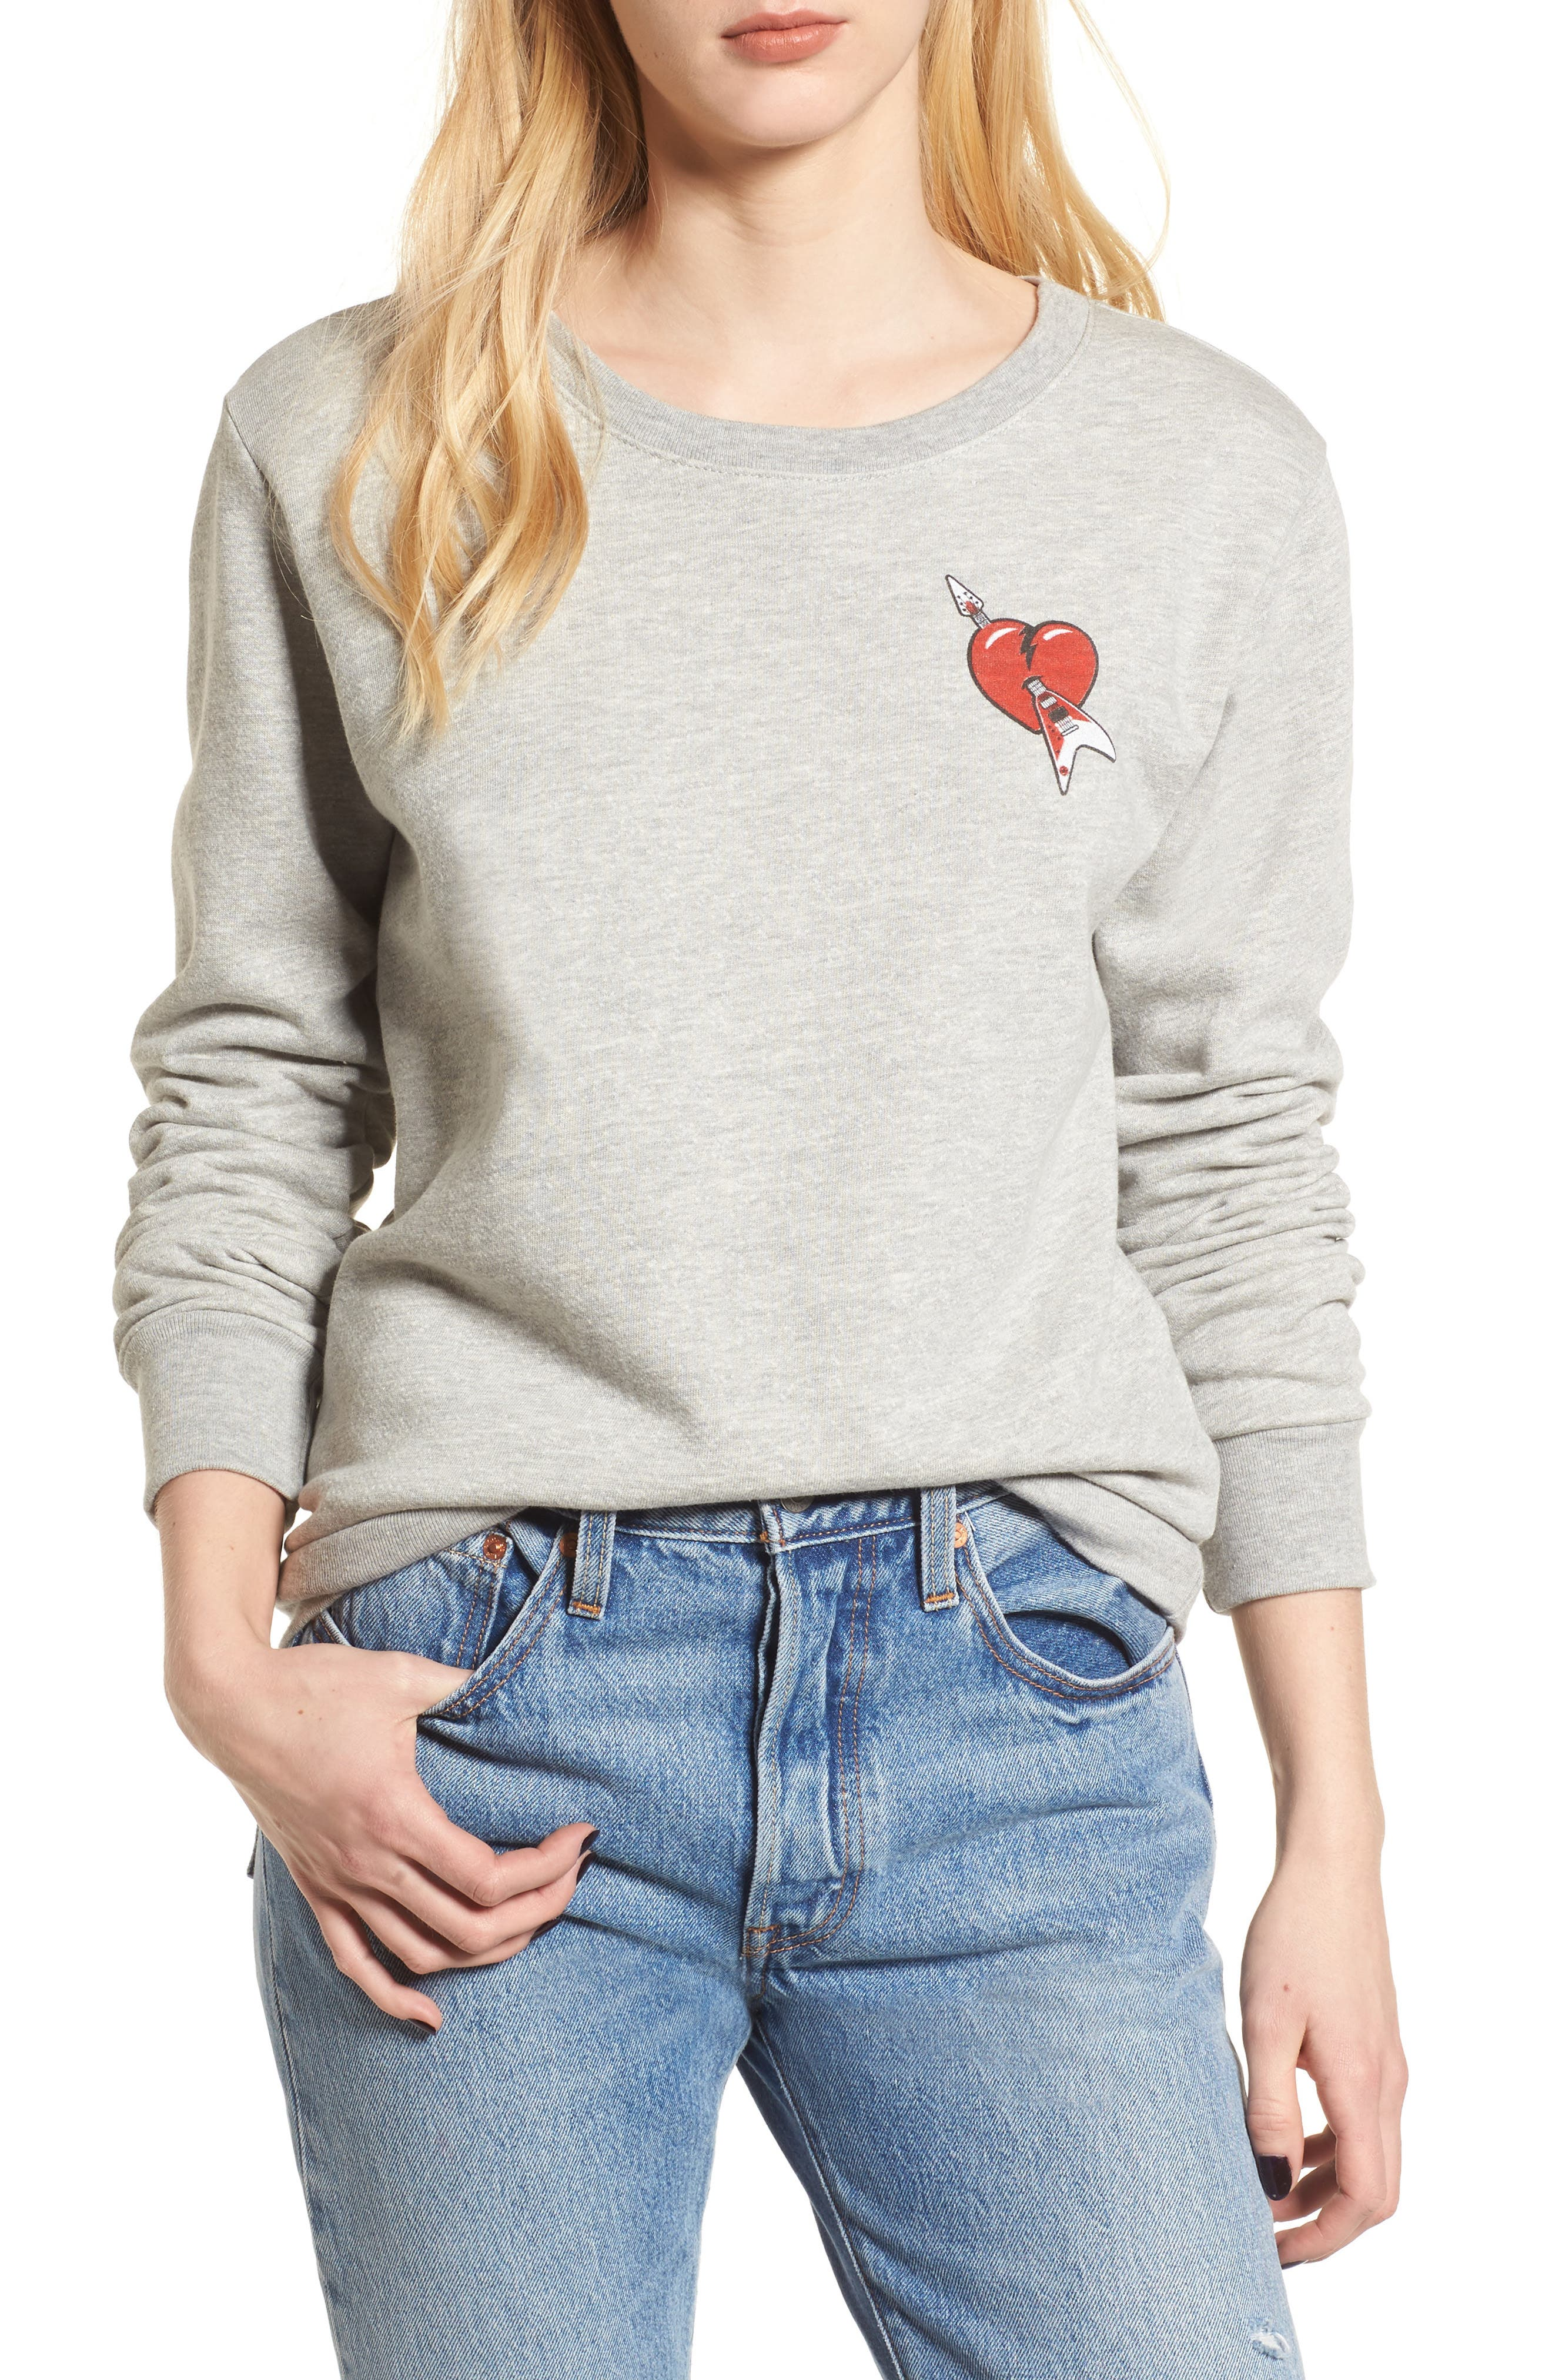 Tom Petty and the Heartbreakers Sweatshirt,                             Main thumbnail 1, color,                             020